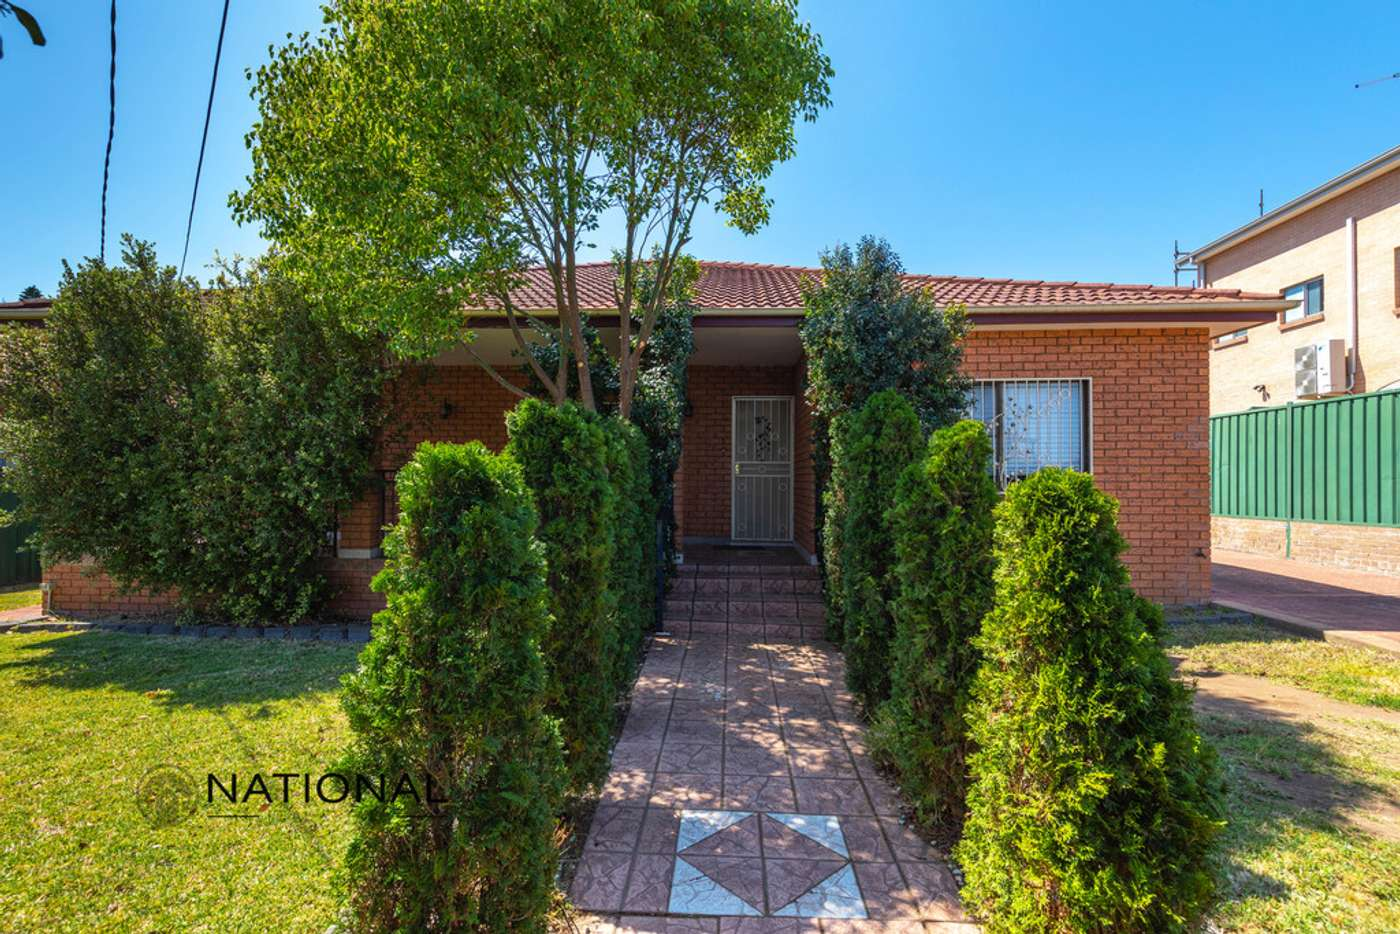 Main view of Homely house listing, 78 Station St, Guildford NSW 2161